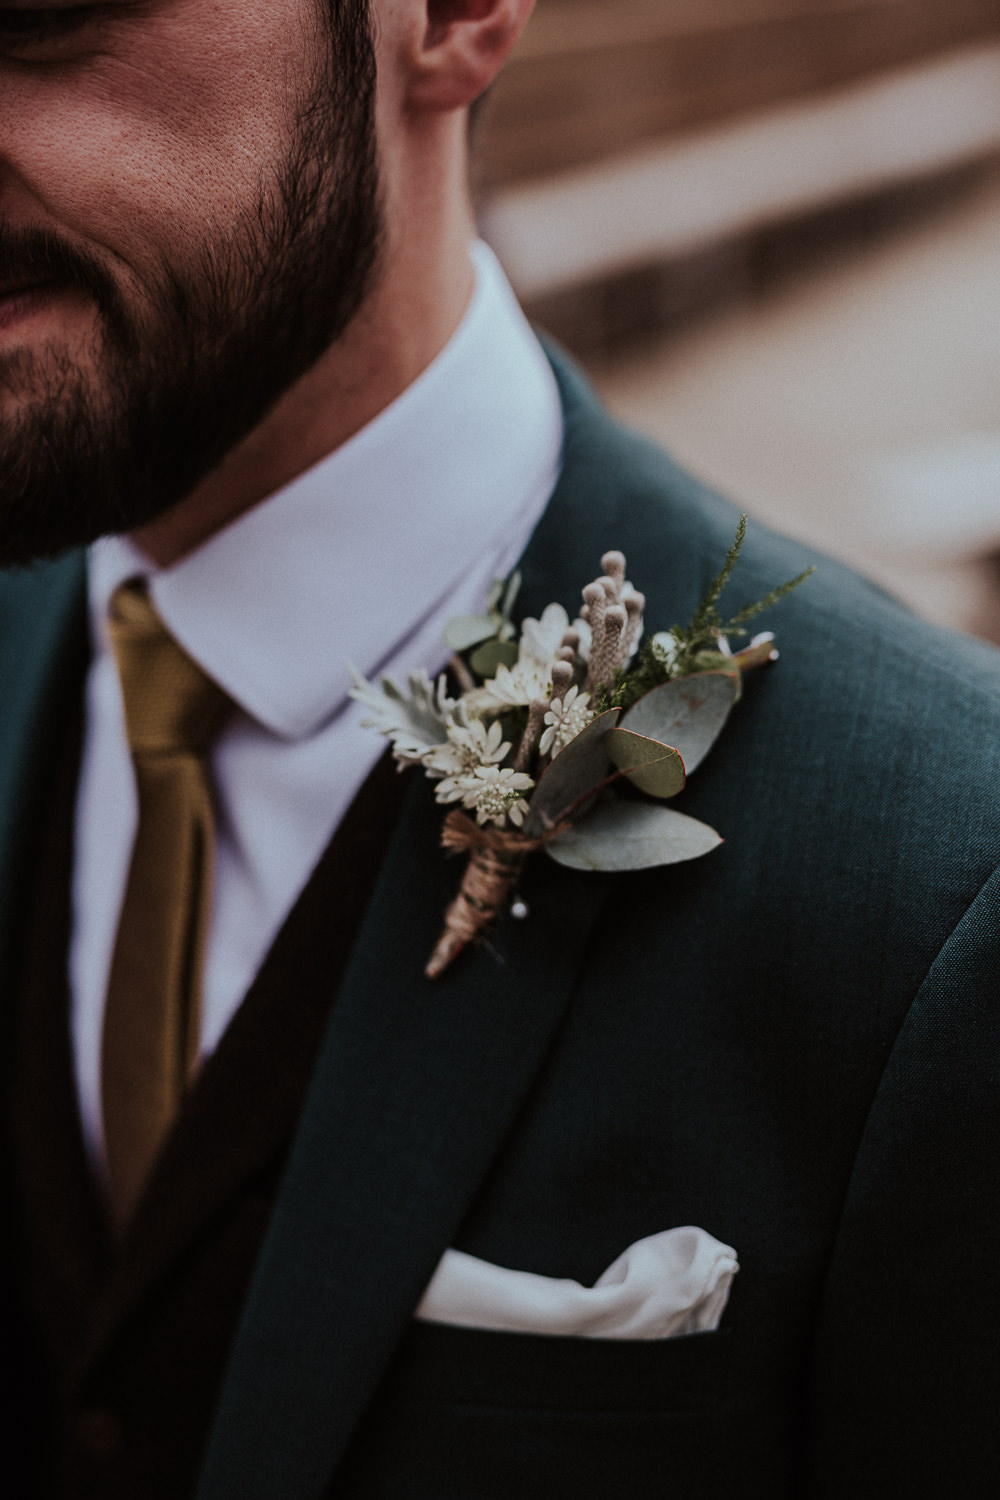 Groom Suit Grey Mustard Tie Buttonhole Flowers White Greenery Faversham Wedding Leeds Steven Haddock Photography